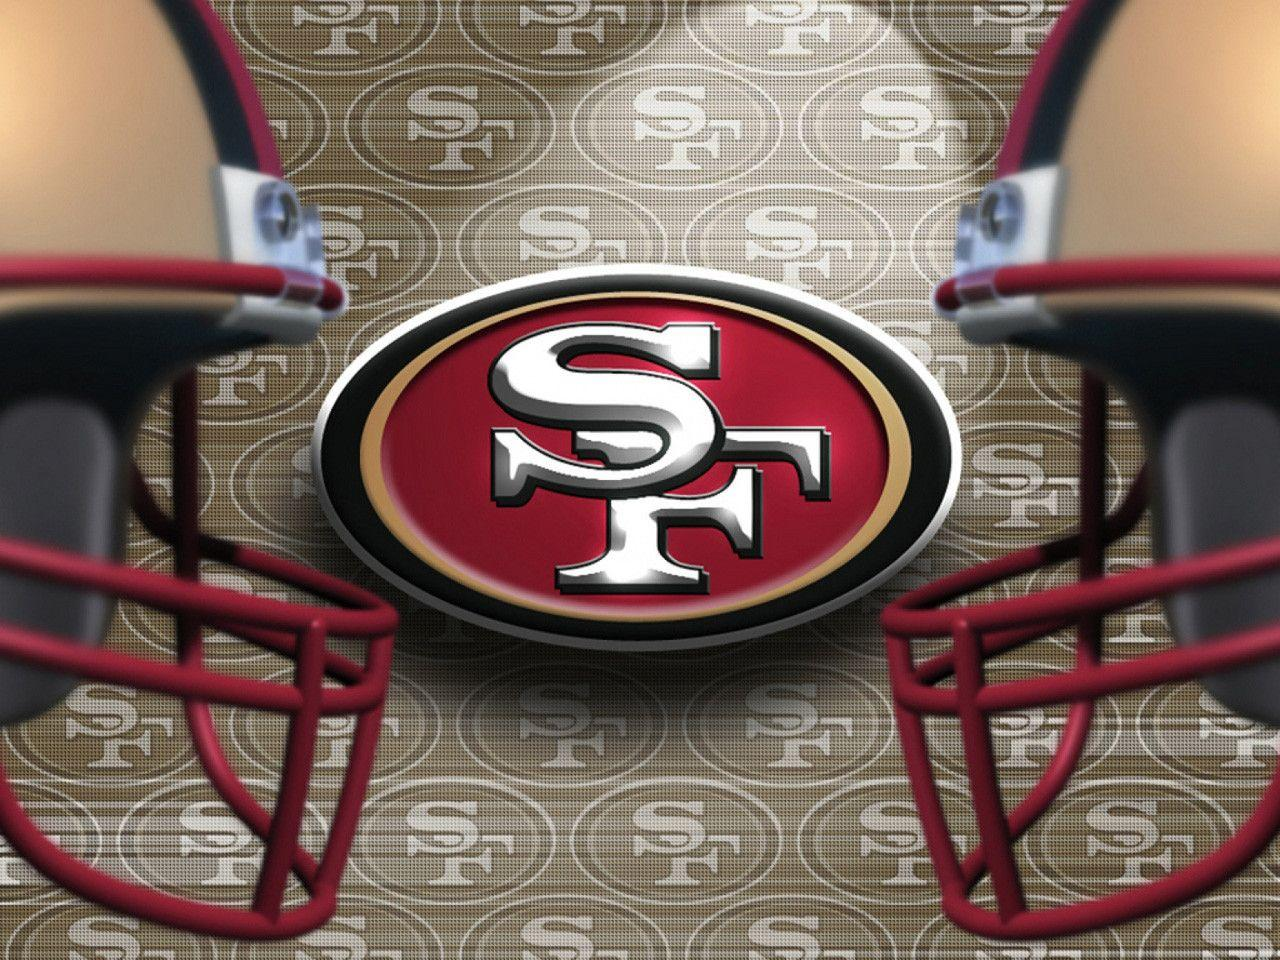 San Francisco 49ers HD Wallpapers 2017 - American Football